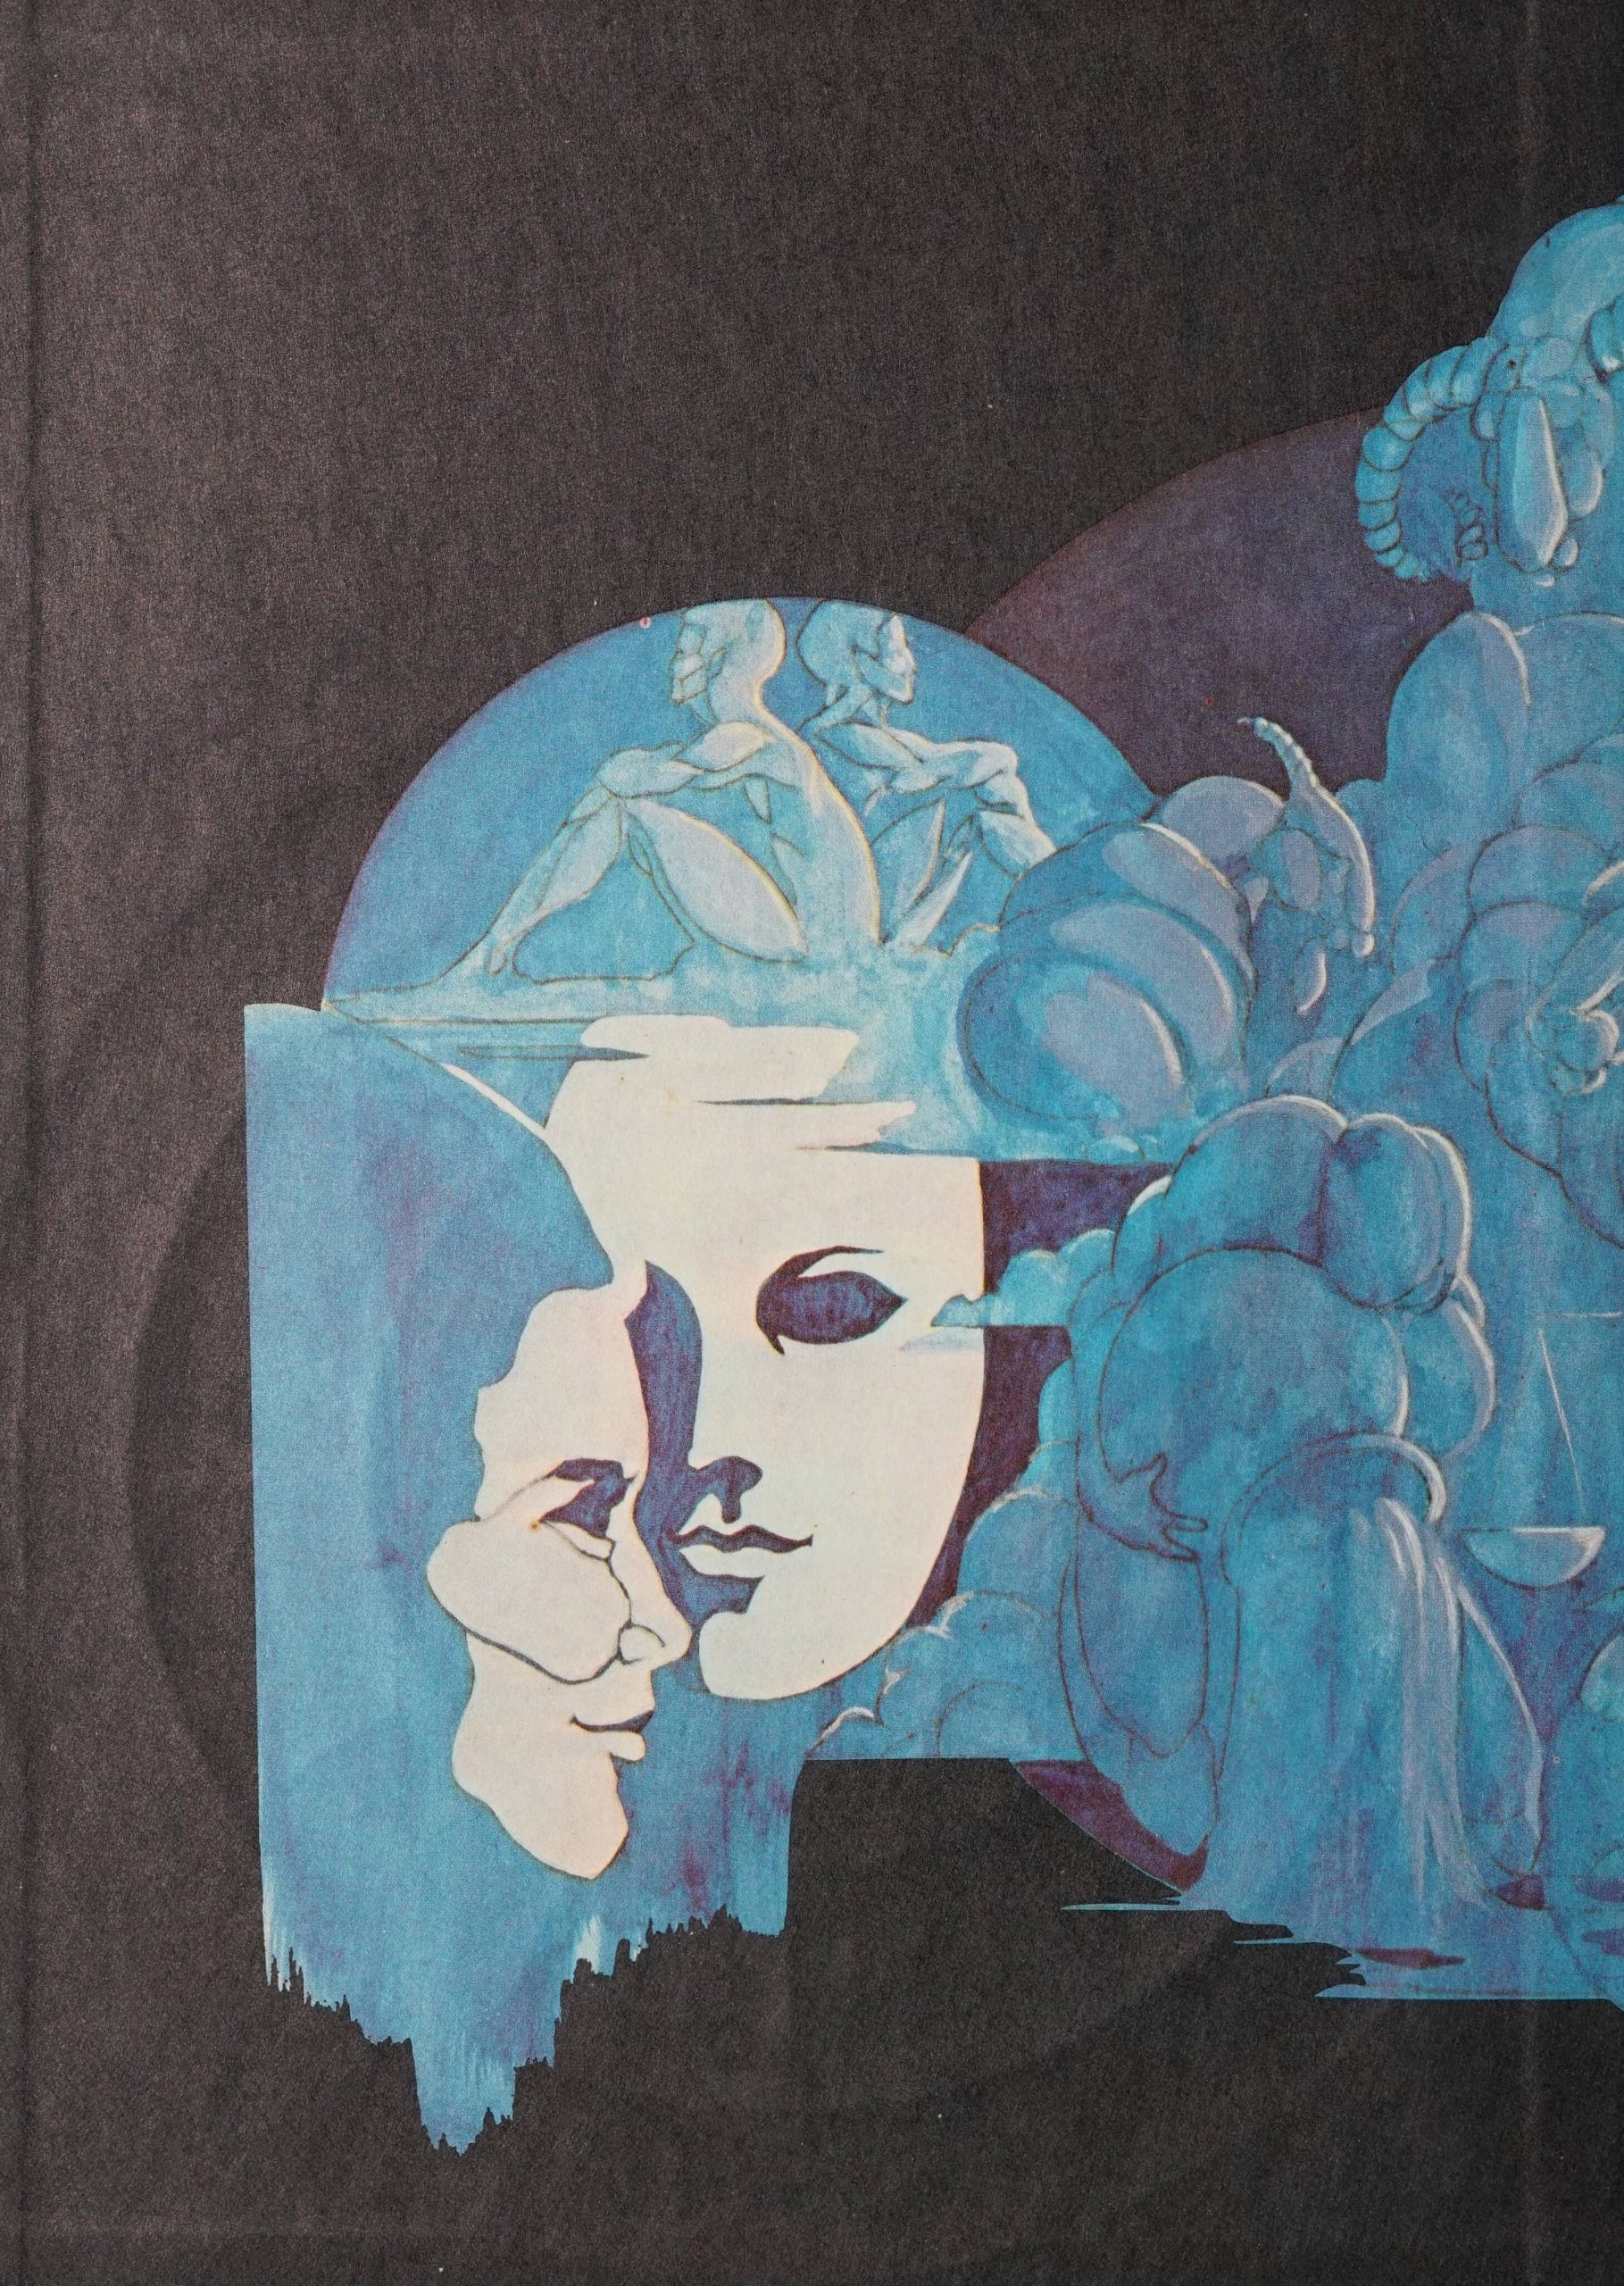 The front cover image of the book shows the various images for the twelve Western zodiacs (e.g. for Aquarius there is a man pouting water out of a container; Gemini has two twins sitting back to back).